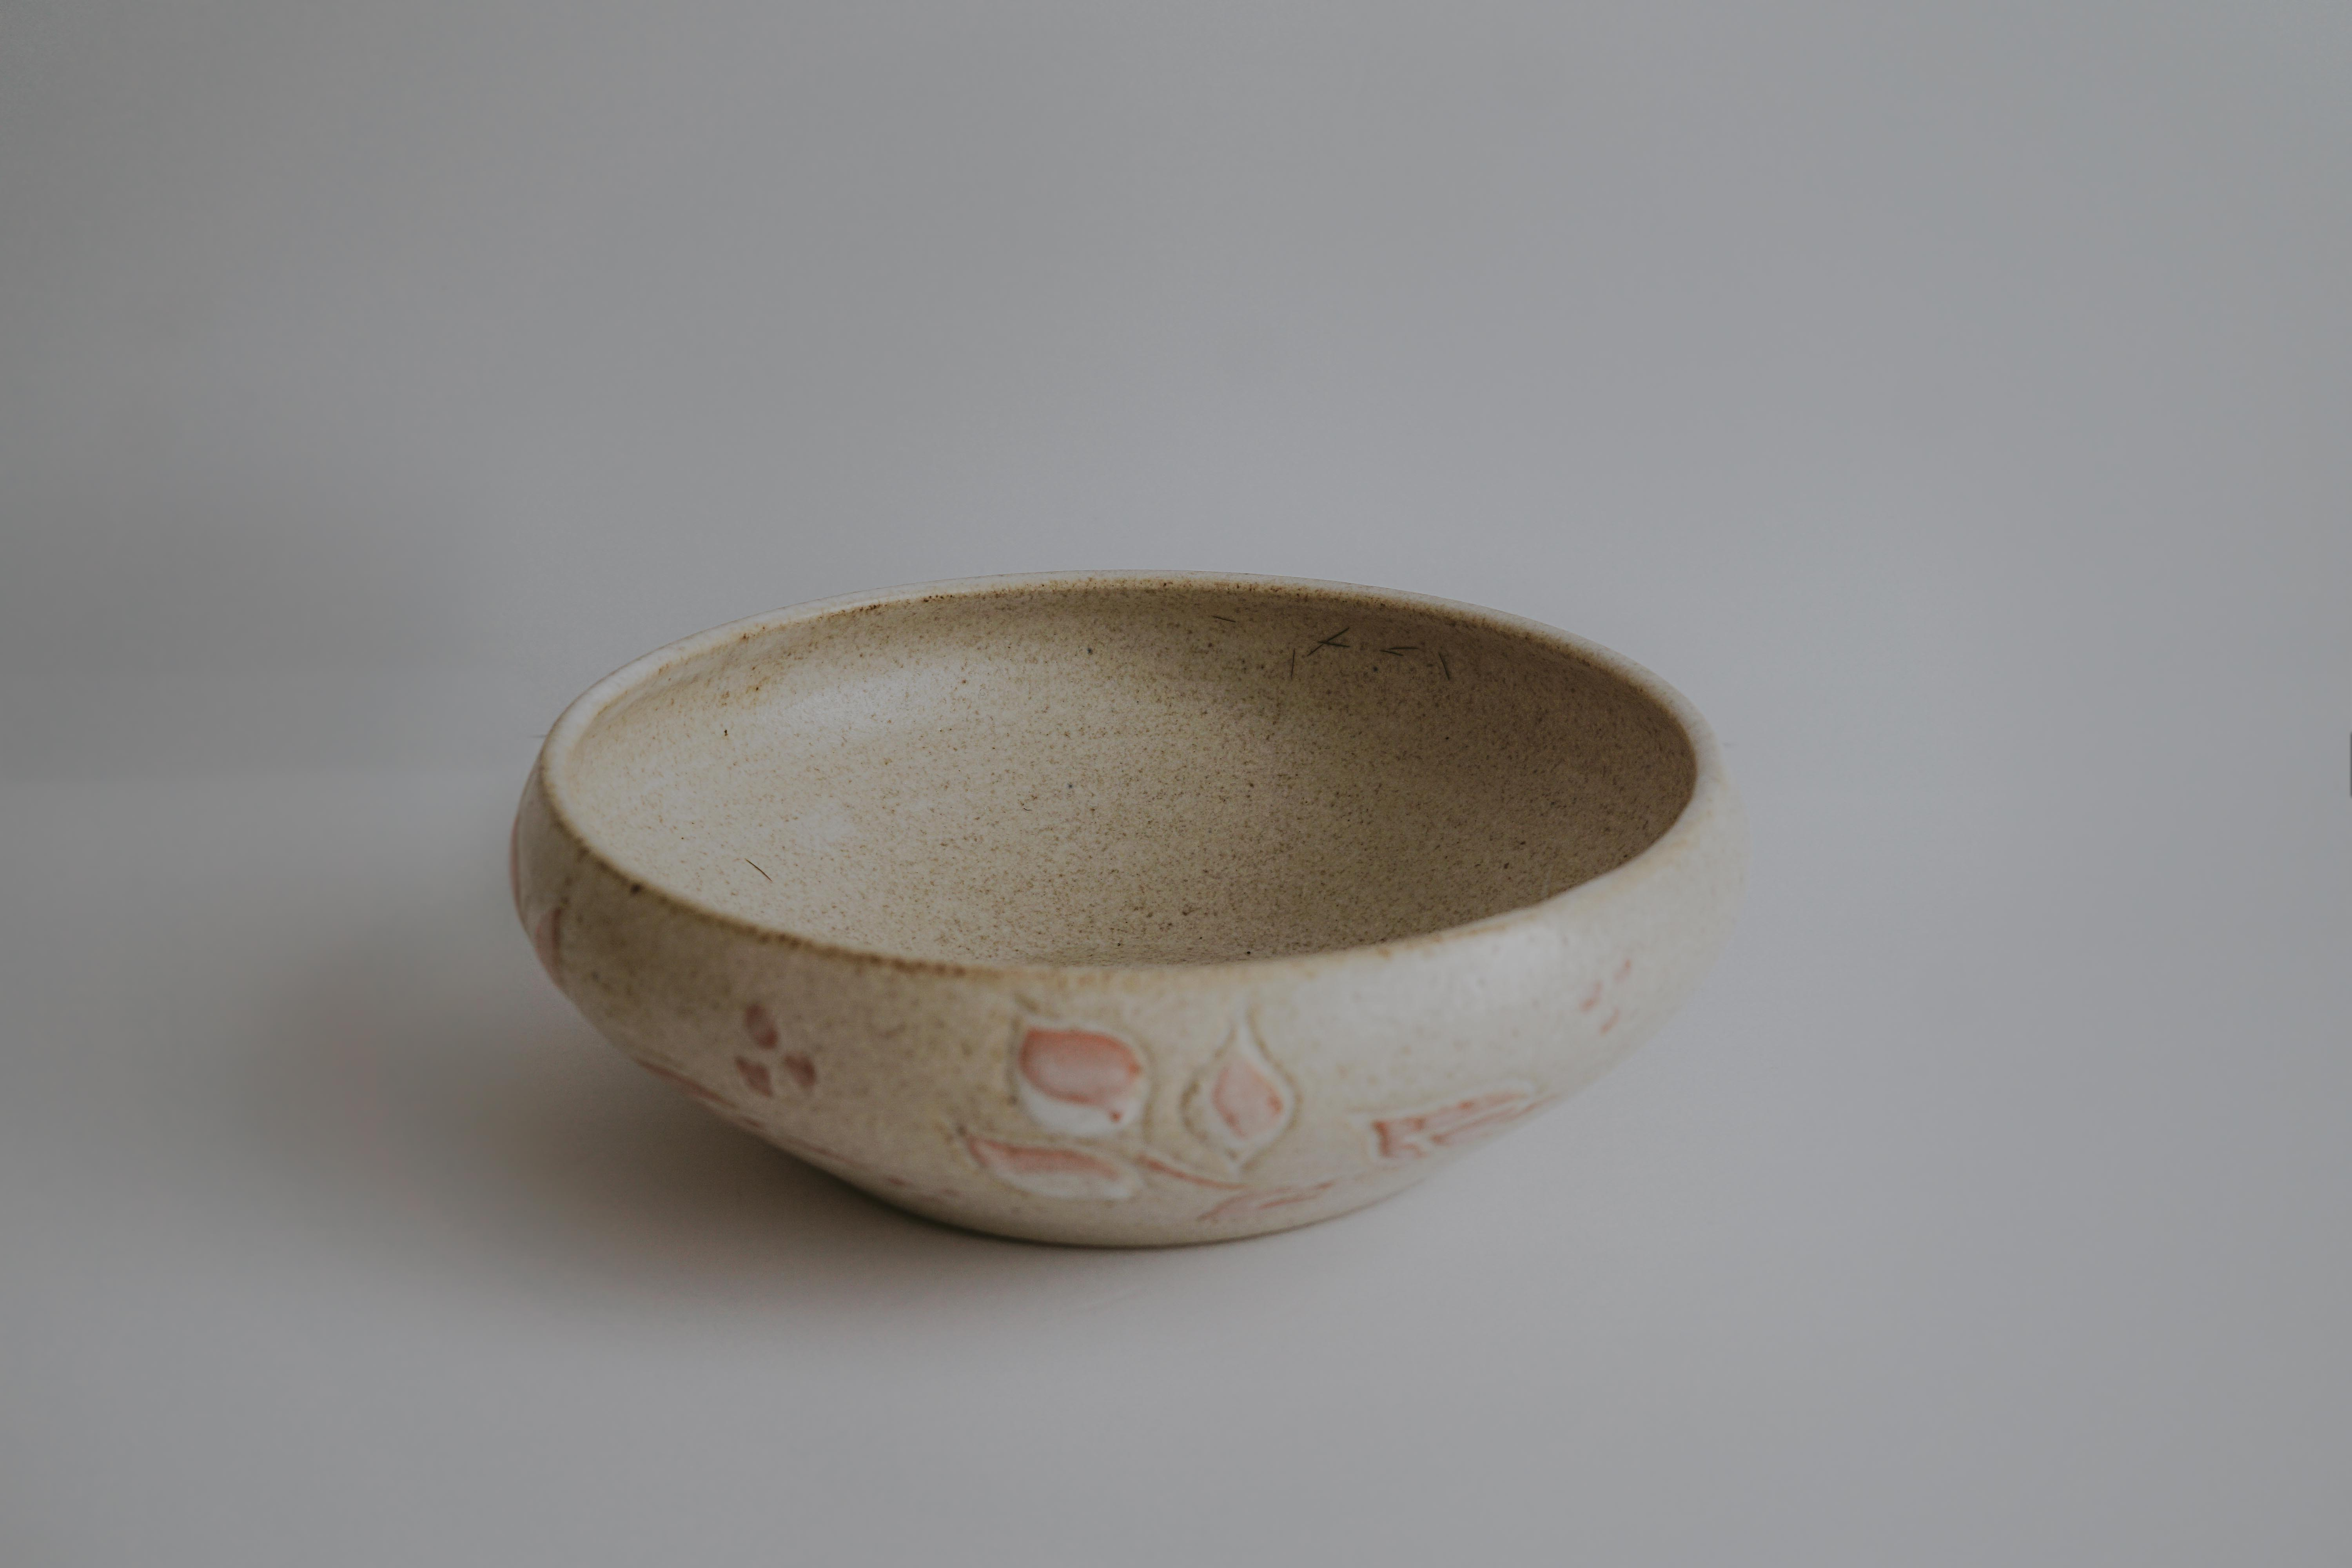 VINTAGE POTTERY DISH WITH FLOWER MOTIF